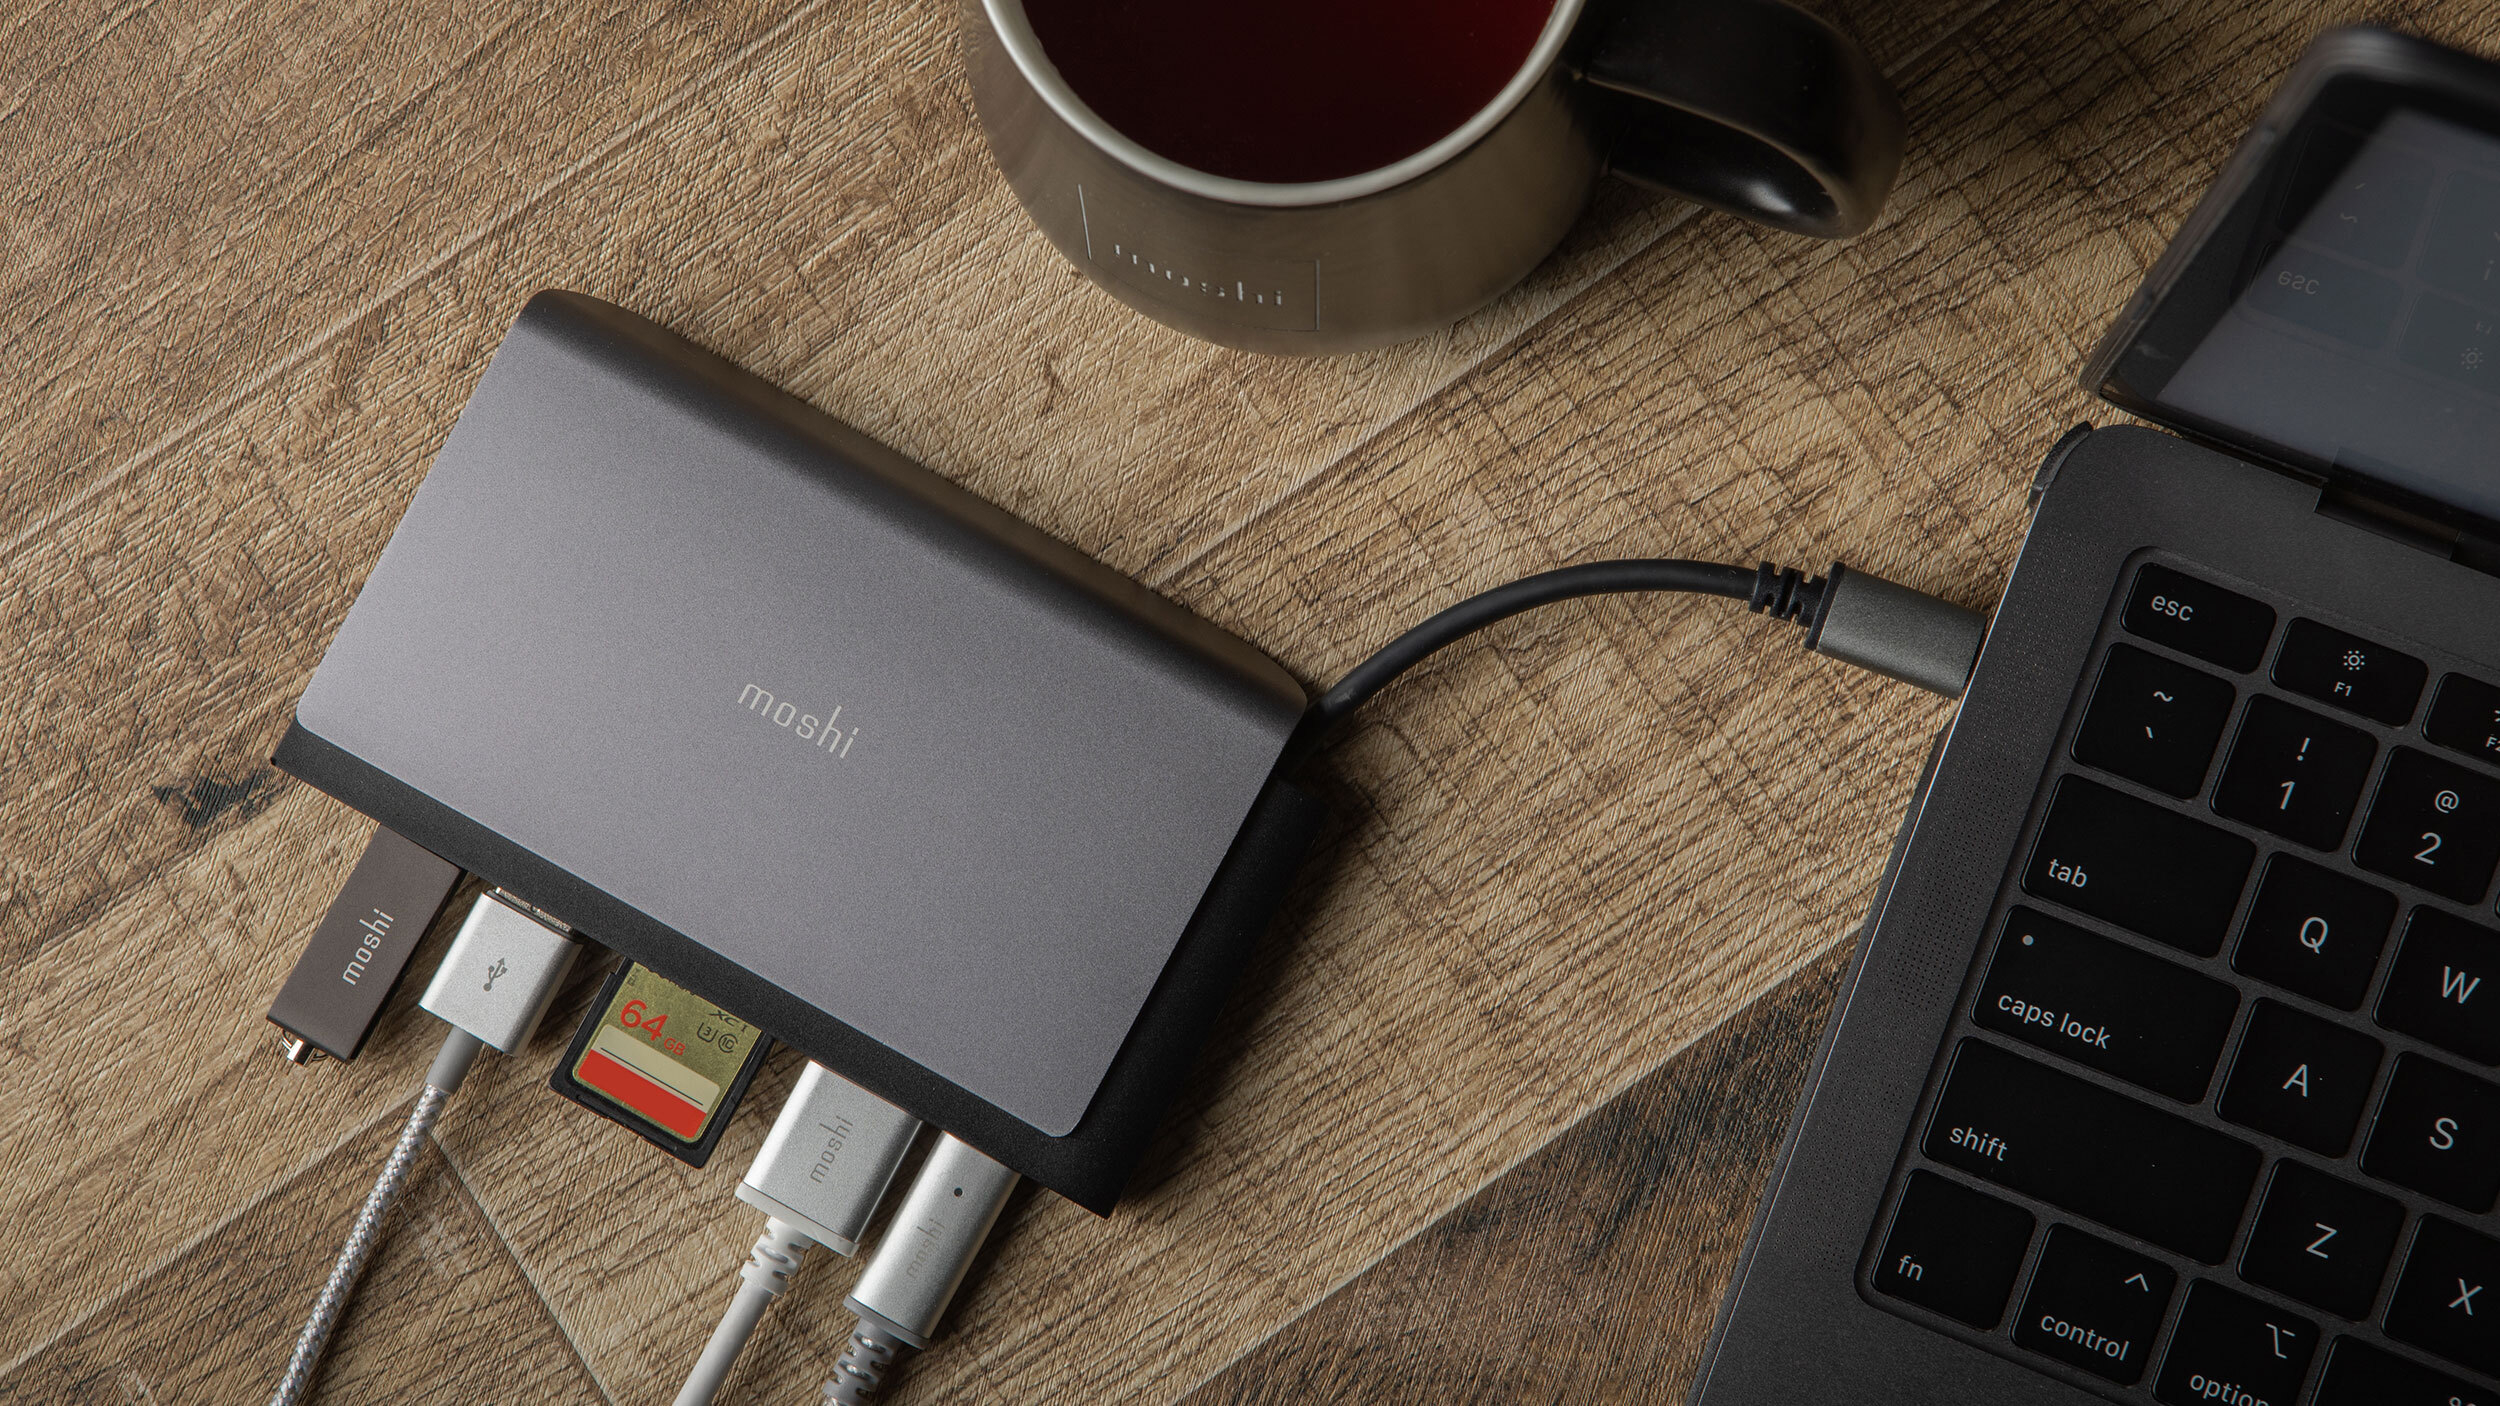 A Moshi Symbus Mini hub connected to a laptop with a USB flash drive, cable, SD card, HDMI cable, and USB-C charger also connected